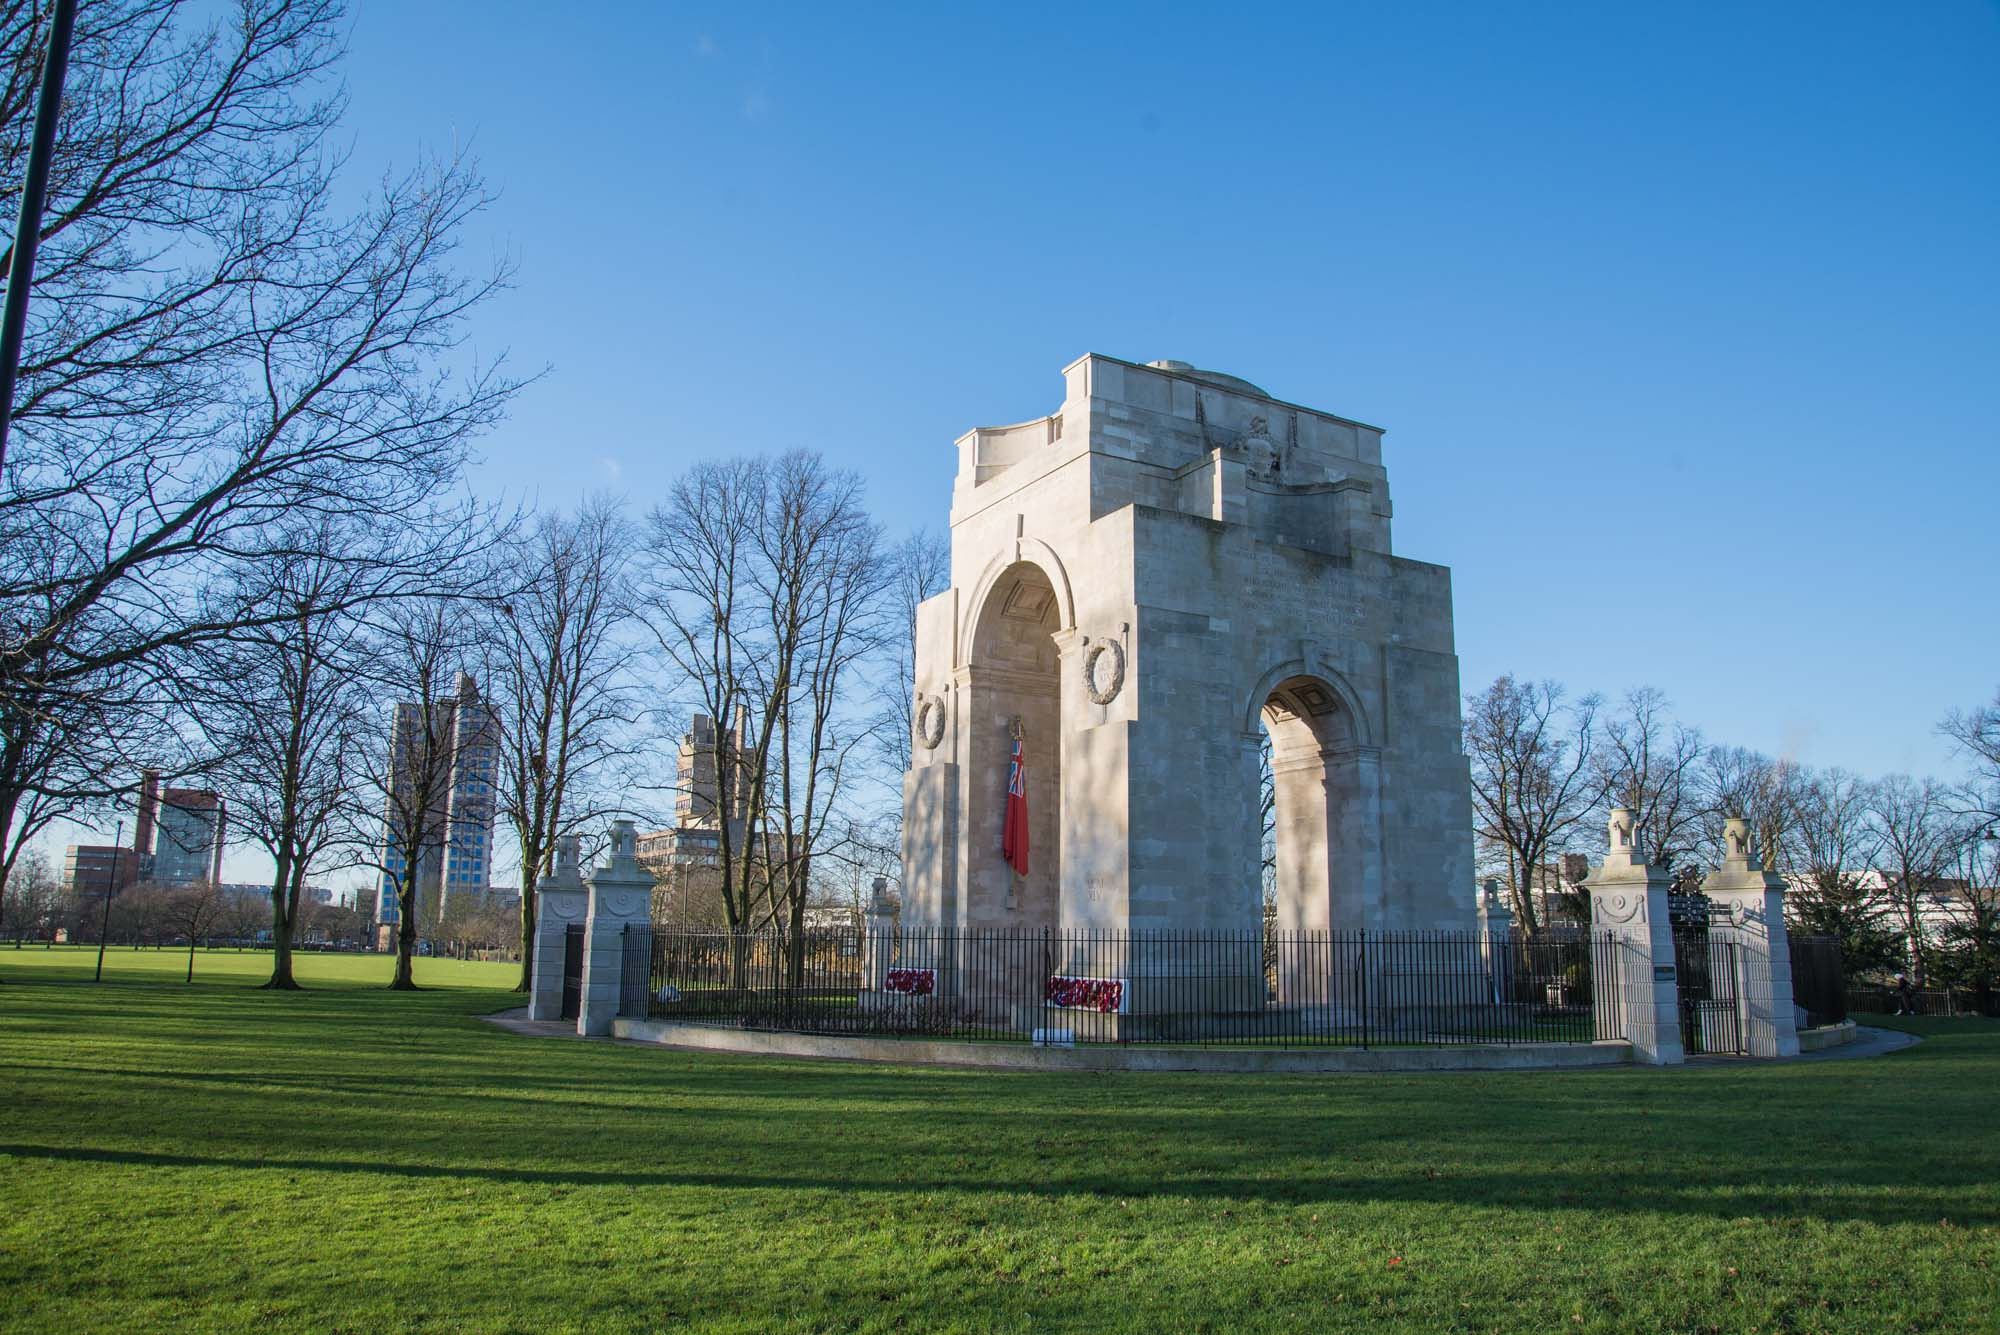 The Arch of Remembrance in 2015 -